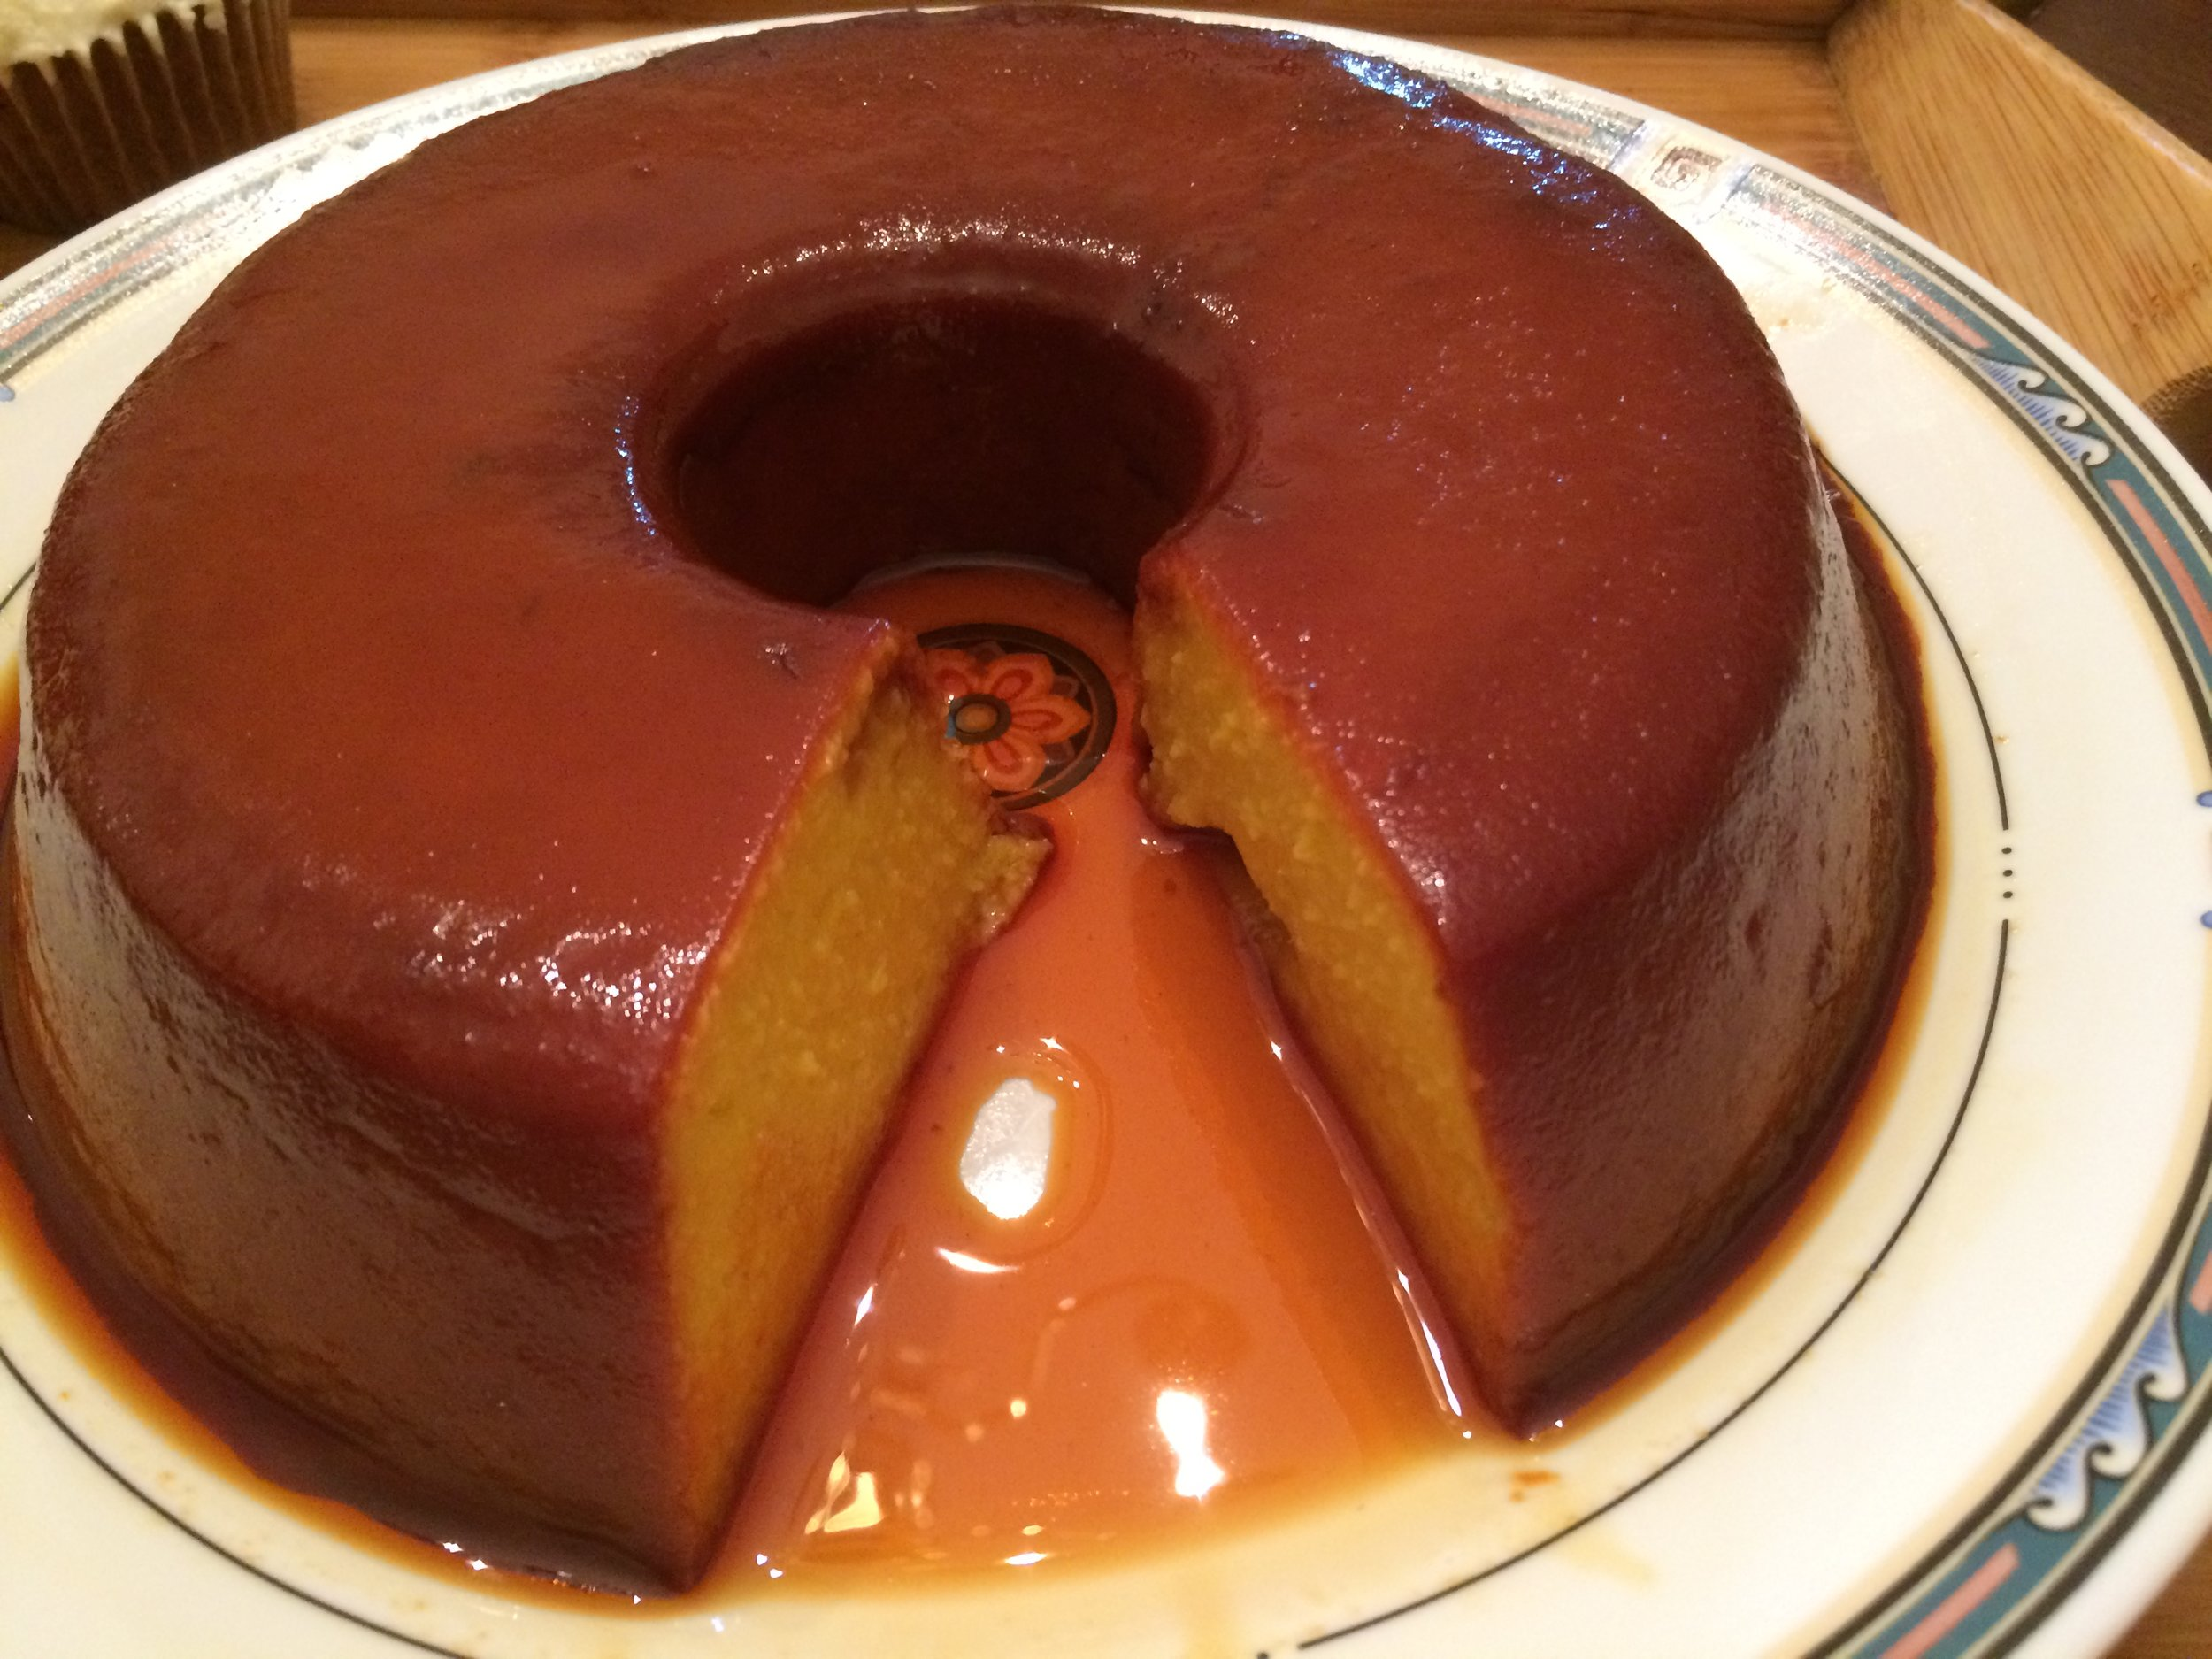 We're celebrating a Cuban Thanksgiving in our household with this pumpkin flan.